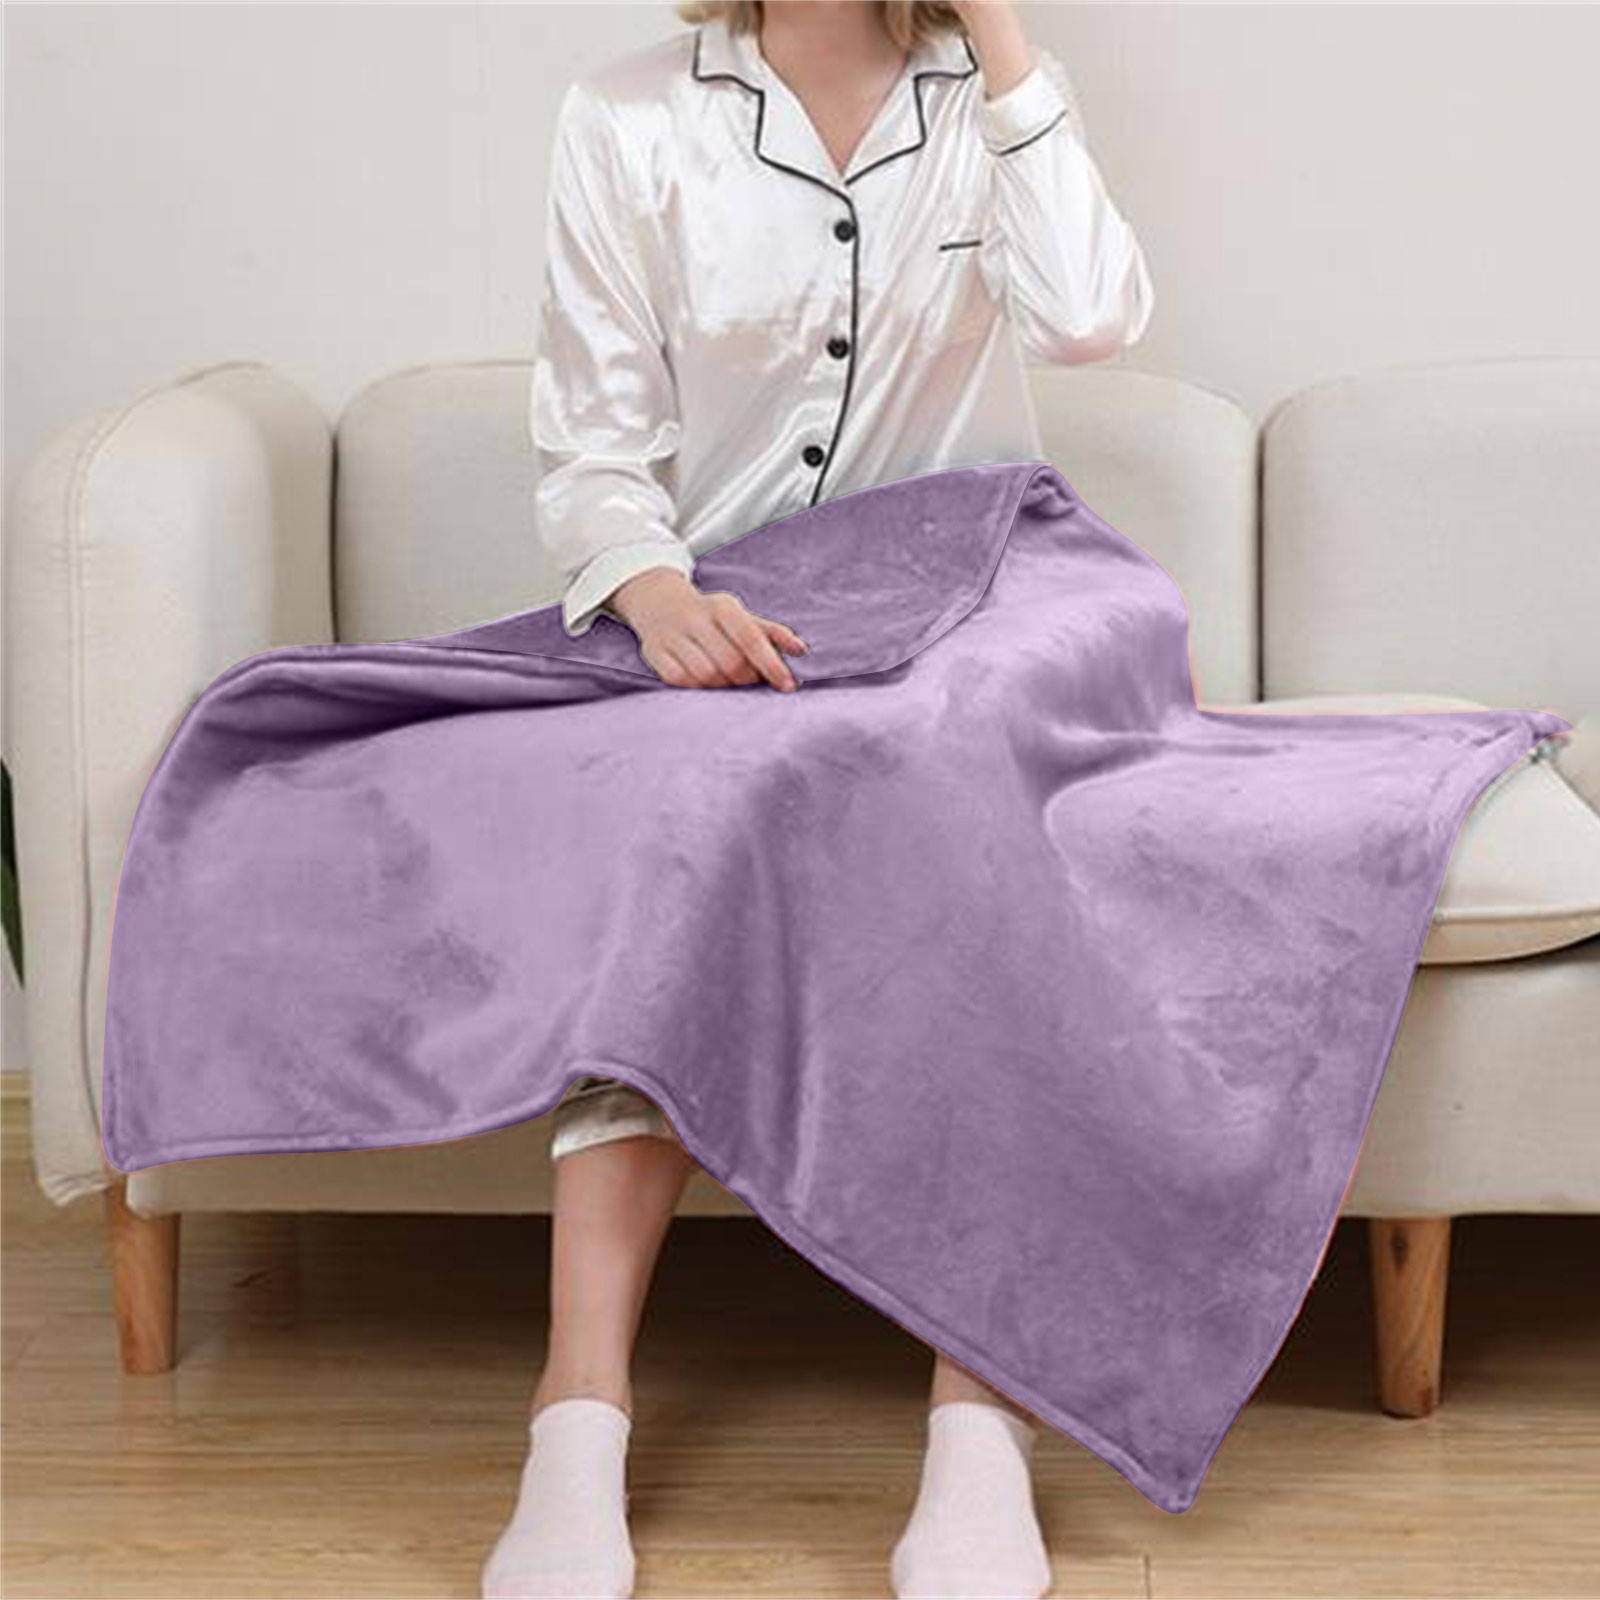 Provided Electric Blanket Body Warmer Winter Single Heated Blanket Usb Portable Soft Heating Blanket Warmer Heater Carpet Heaters Pad Comfortable And Easy To Wear